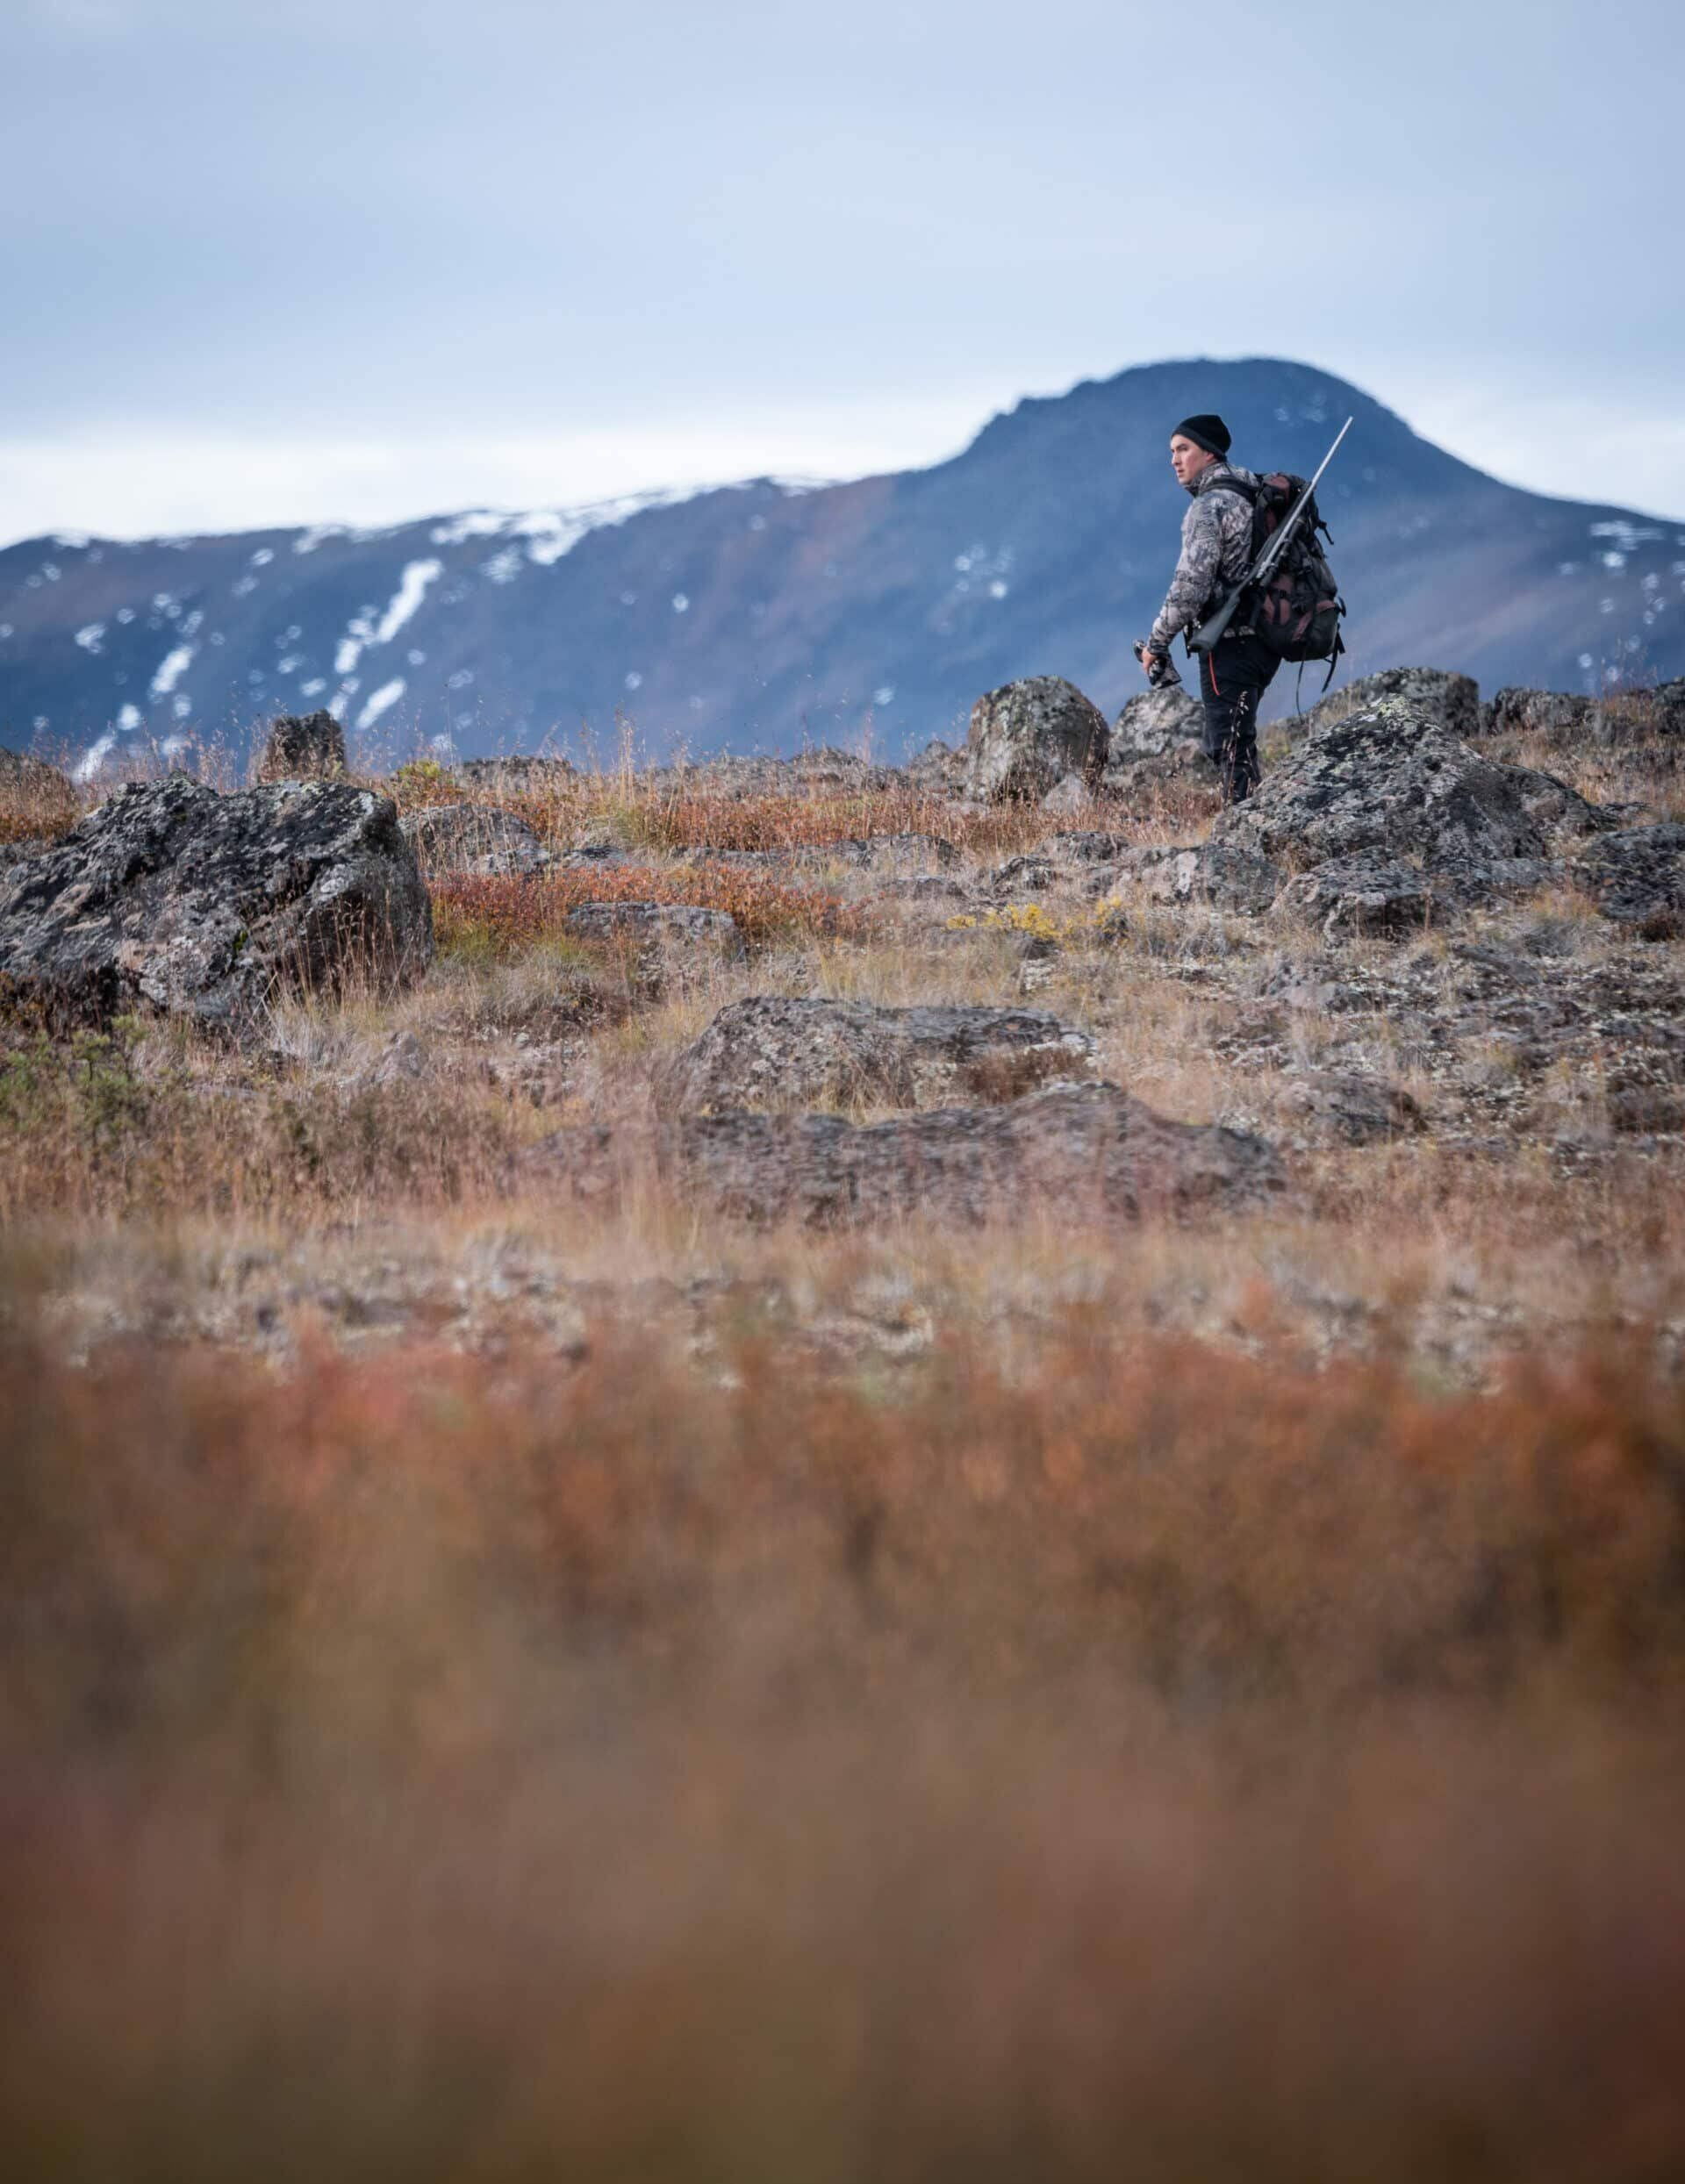 Tahltan President Chad Day hunting